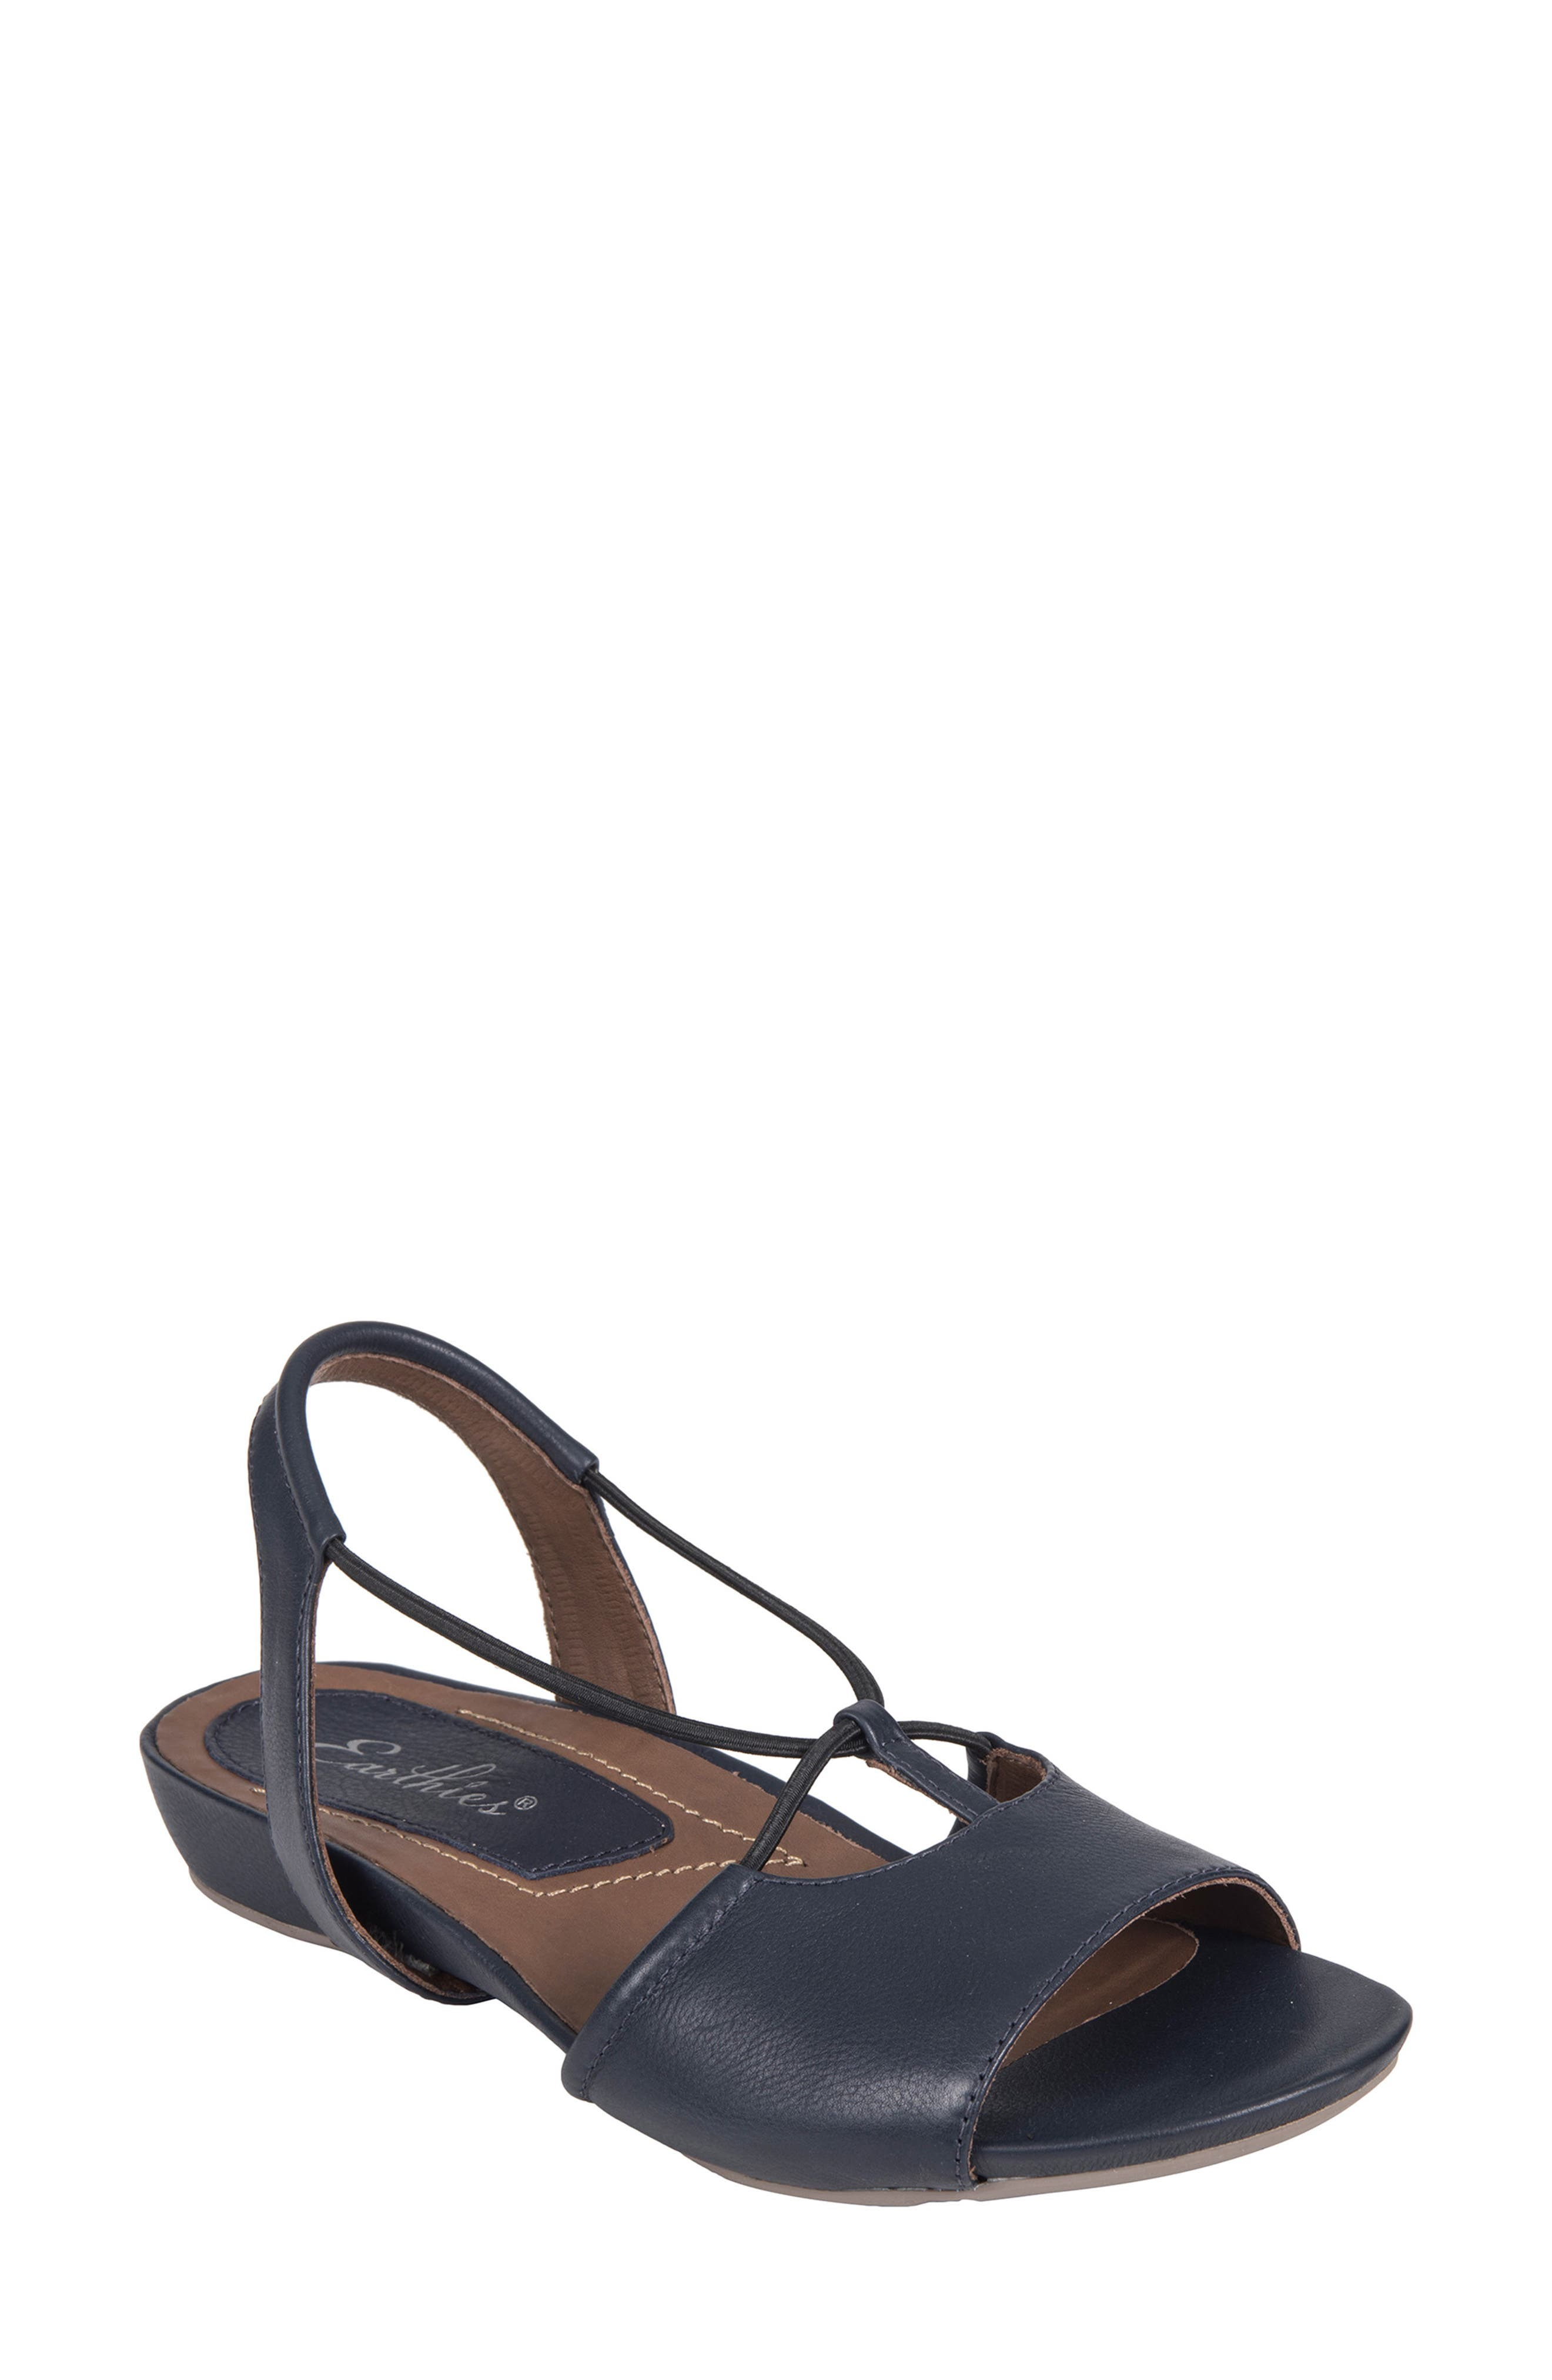 Lacona Sandal,                         Main,                         color, Navy Leather